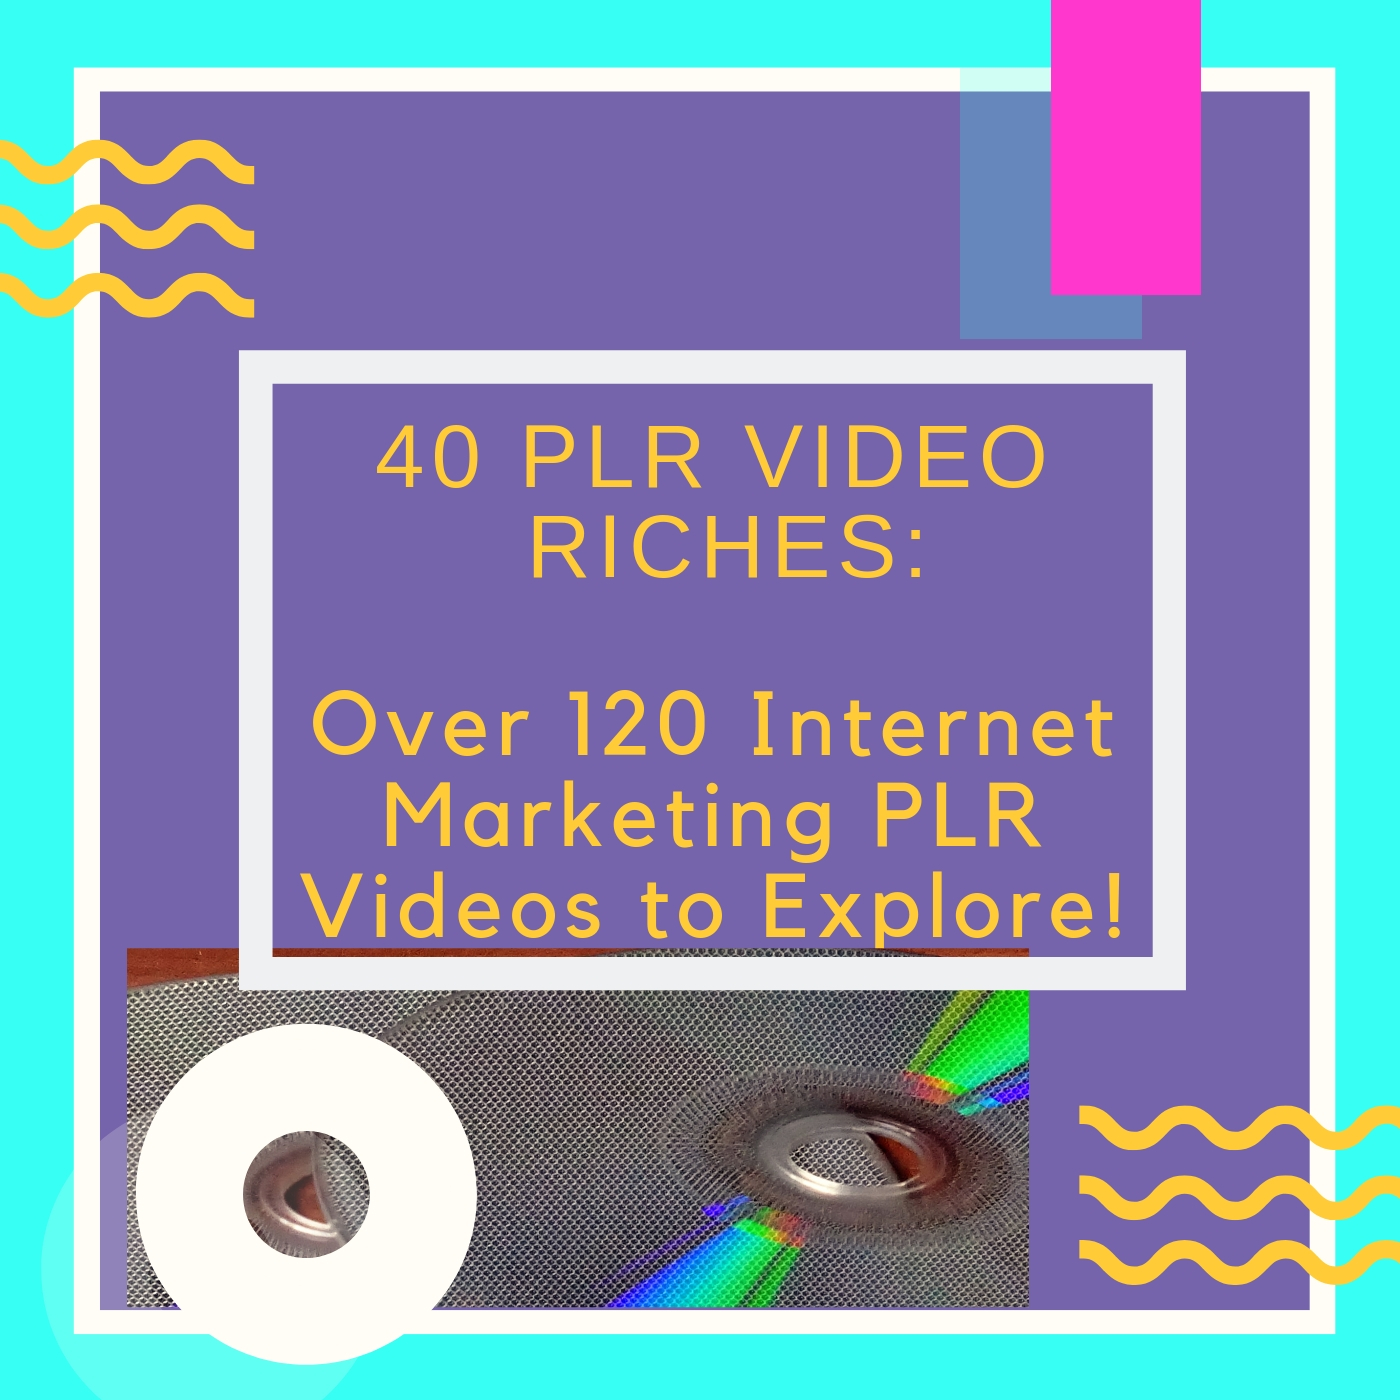 GET AMAZING 40 PLR ONLINE MARKETING COURSES VIA VIDEO